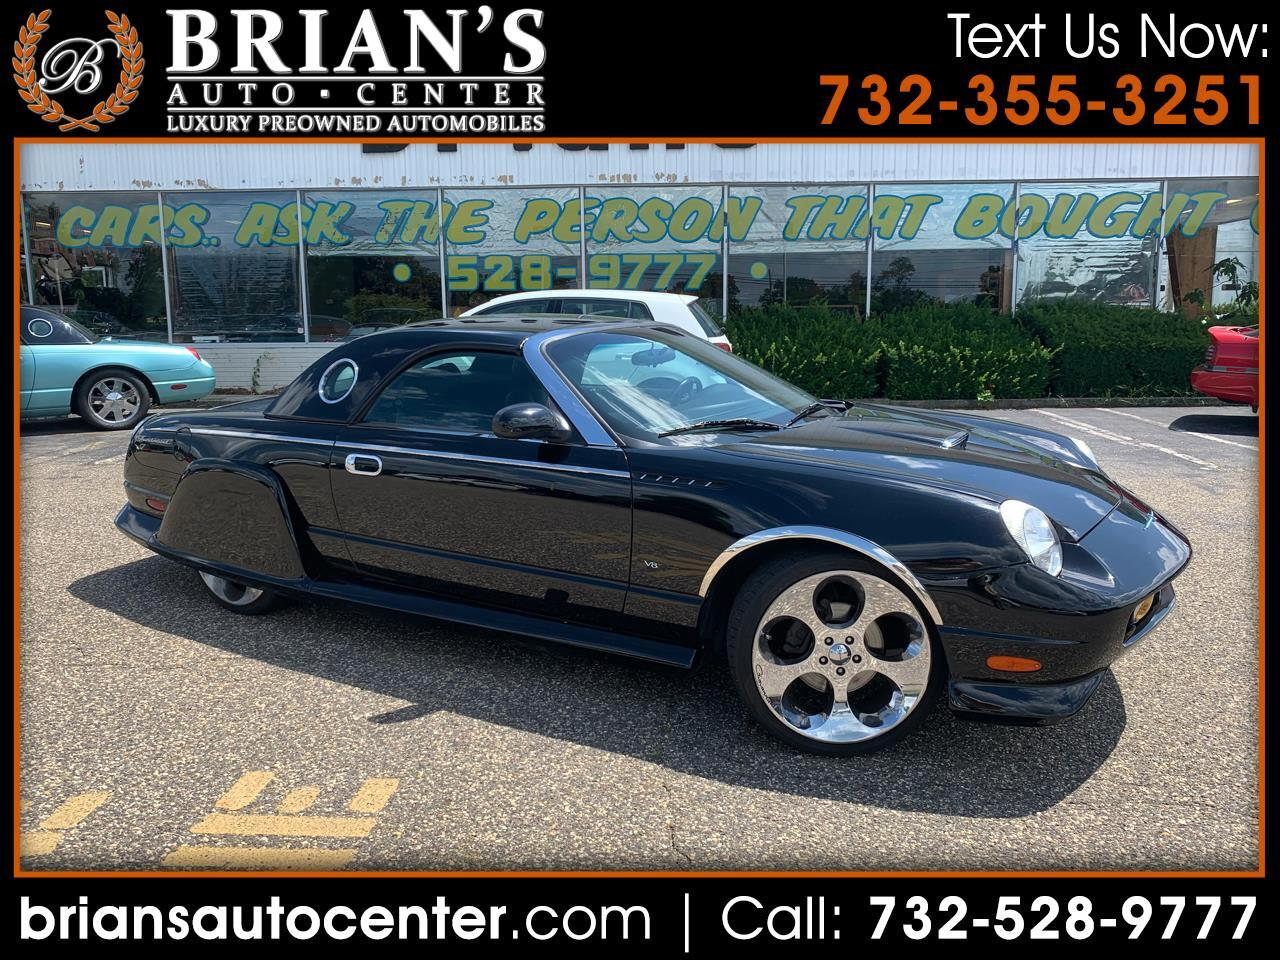 2003 Ford Thunderbird 2dr Conv w/Hardtop Deluxe